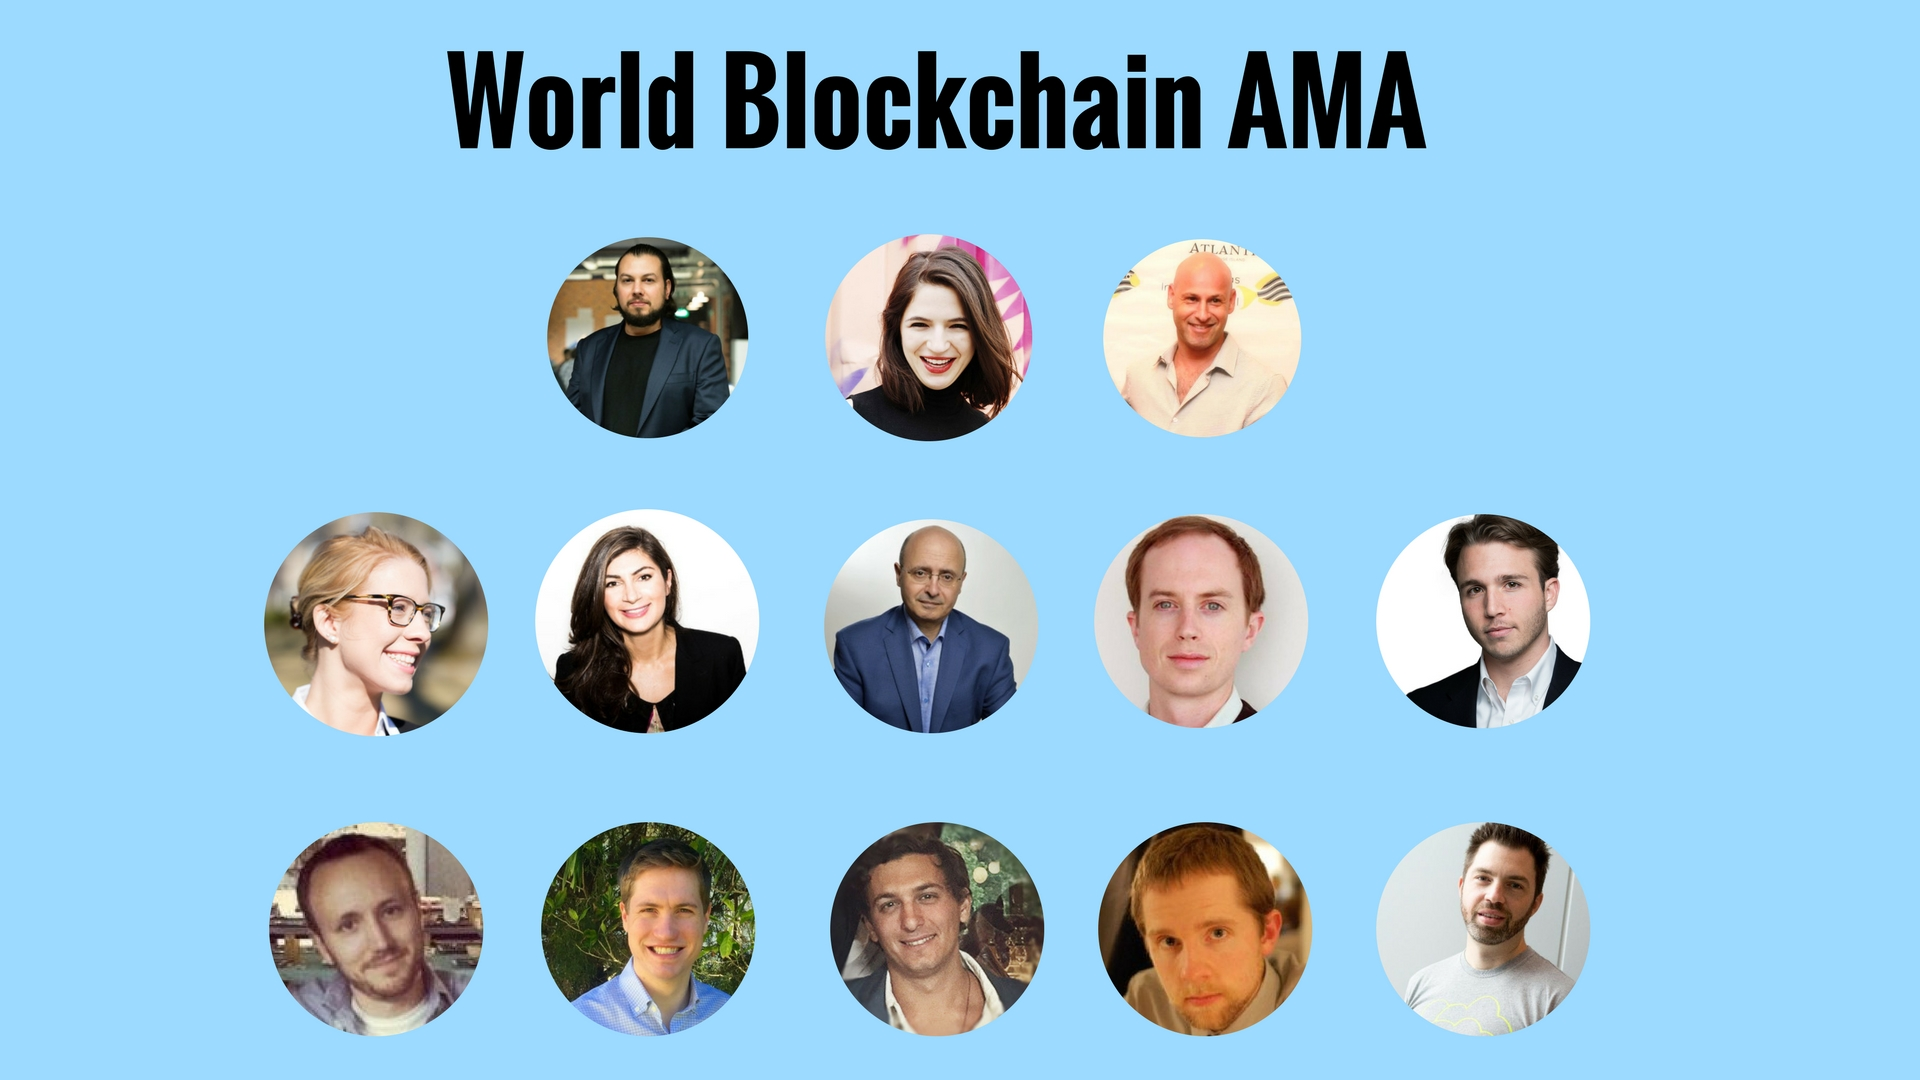 World Blockchain AMA